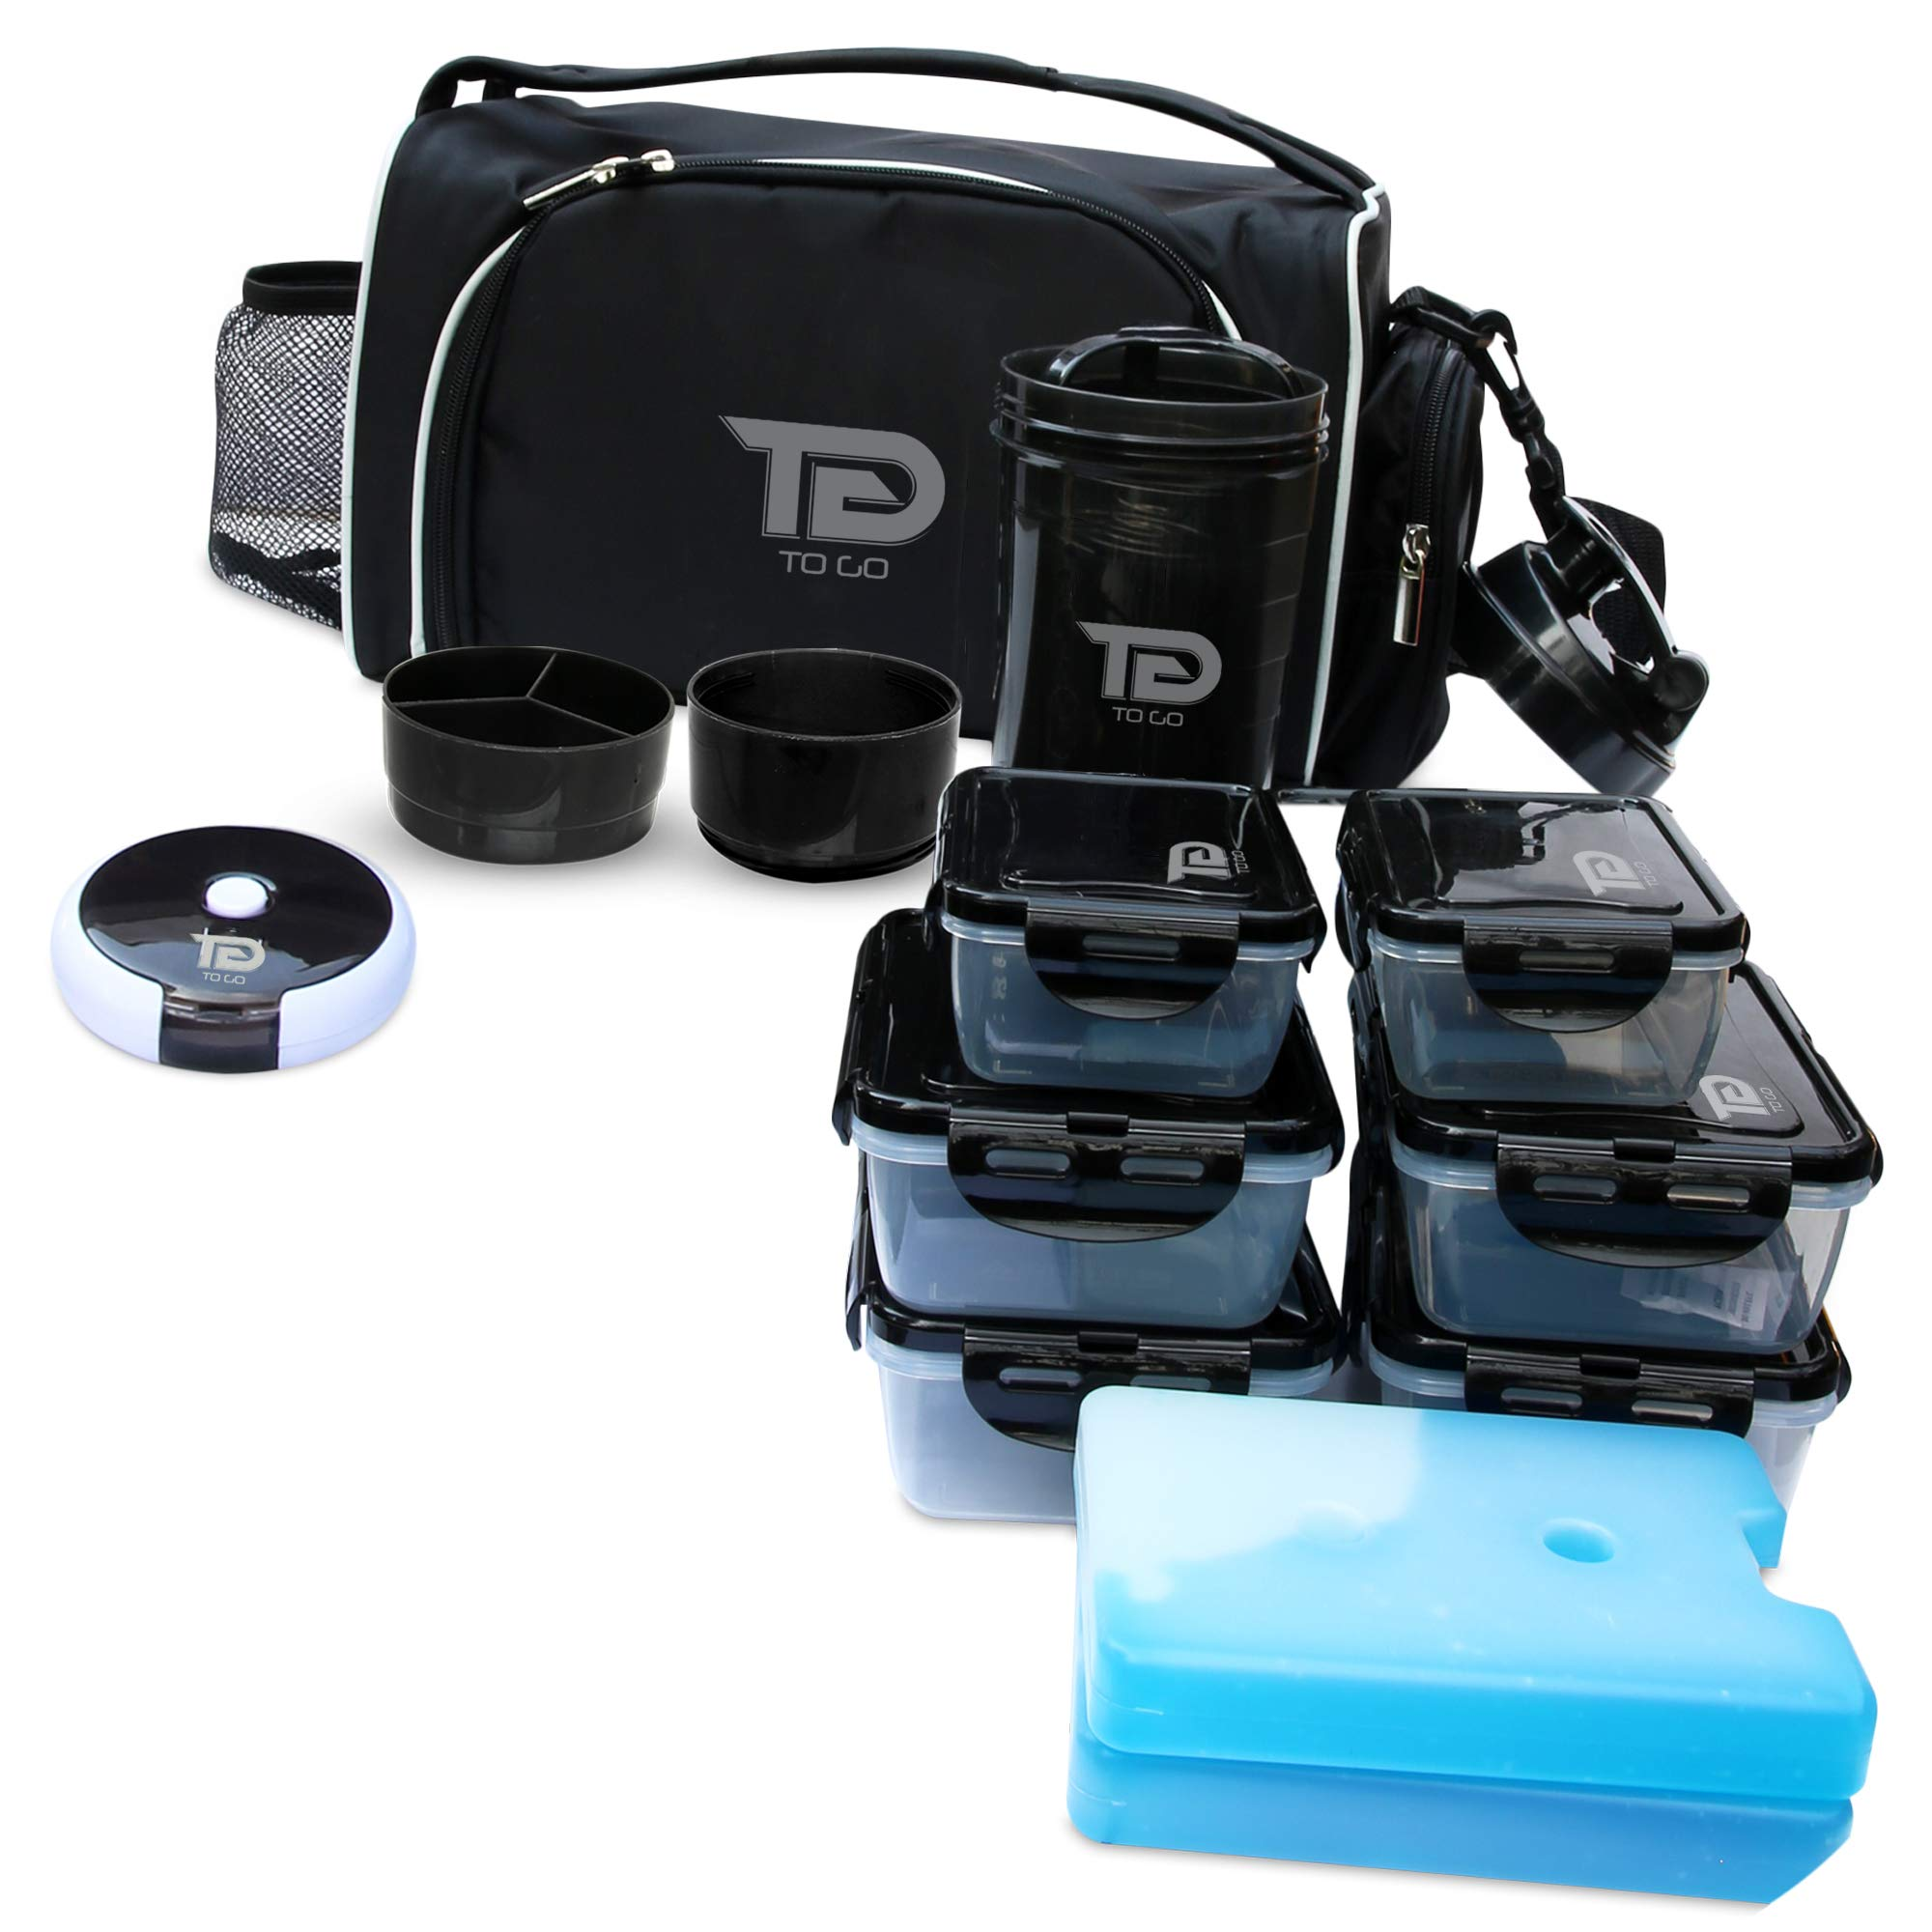 Meal Prep Bag By TO GO Insulated Lunch Meals Bag W/6 Portion Control Containers,2 ICE PACKS, Shaker, Pill Box,With an Adjustable shoulder. bag for meals (Black/new) by TO GO (Image #1)